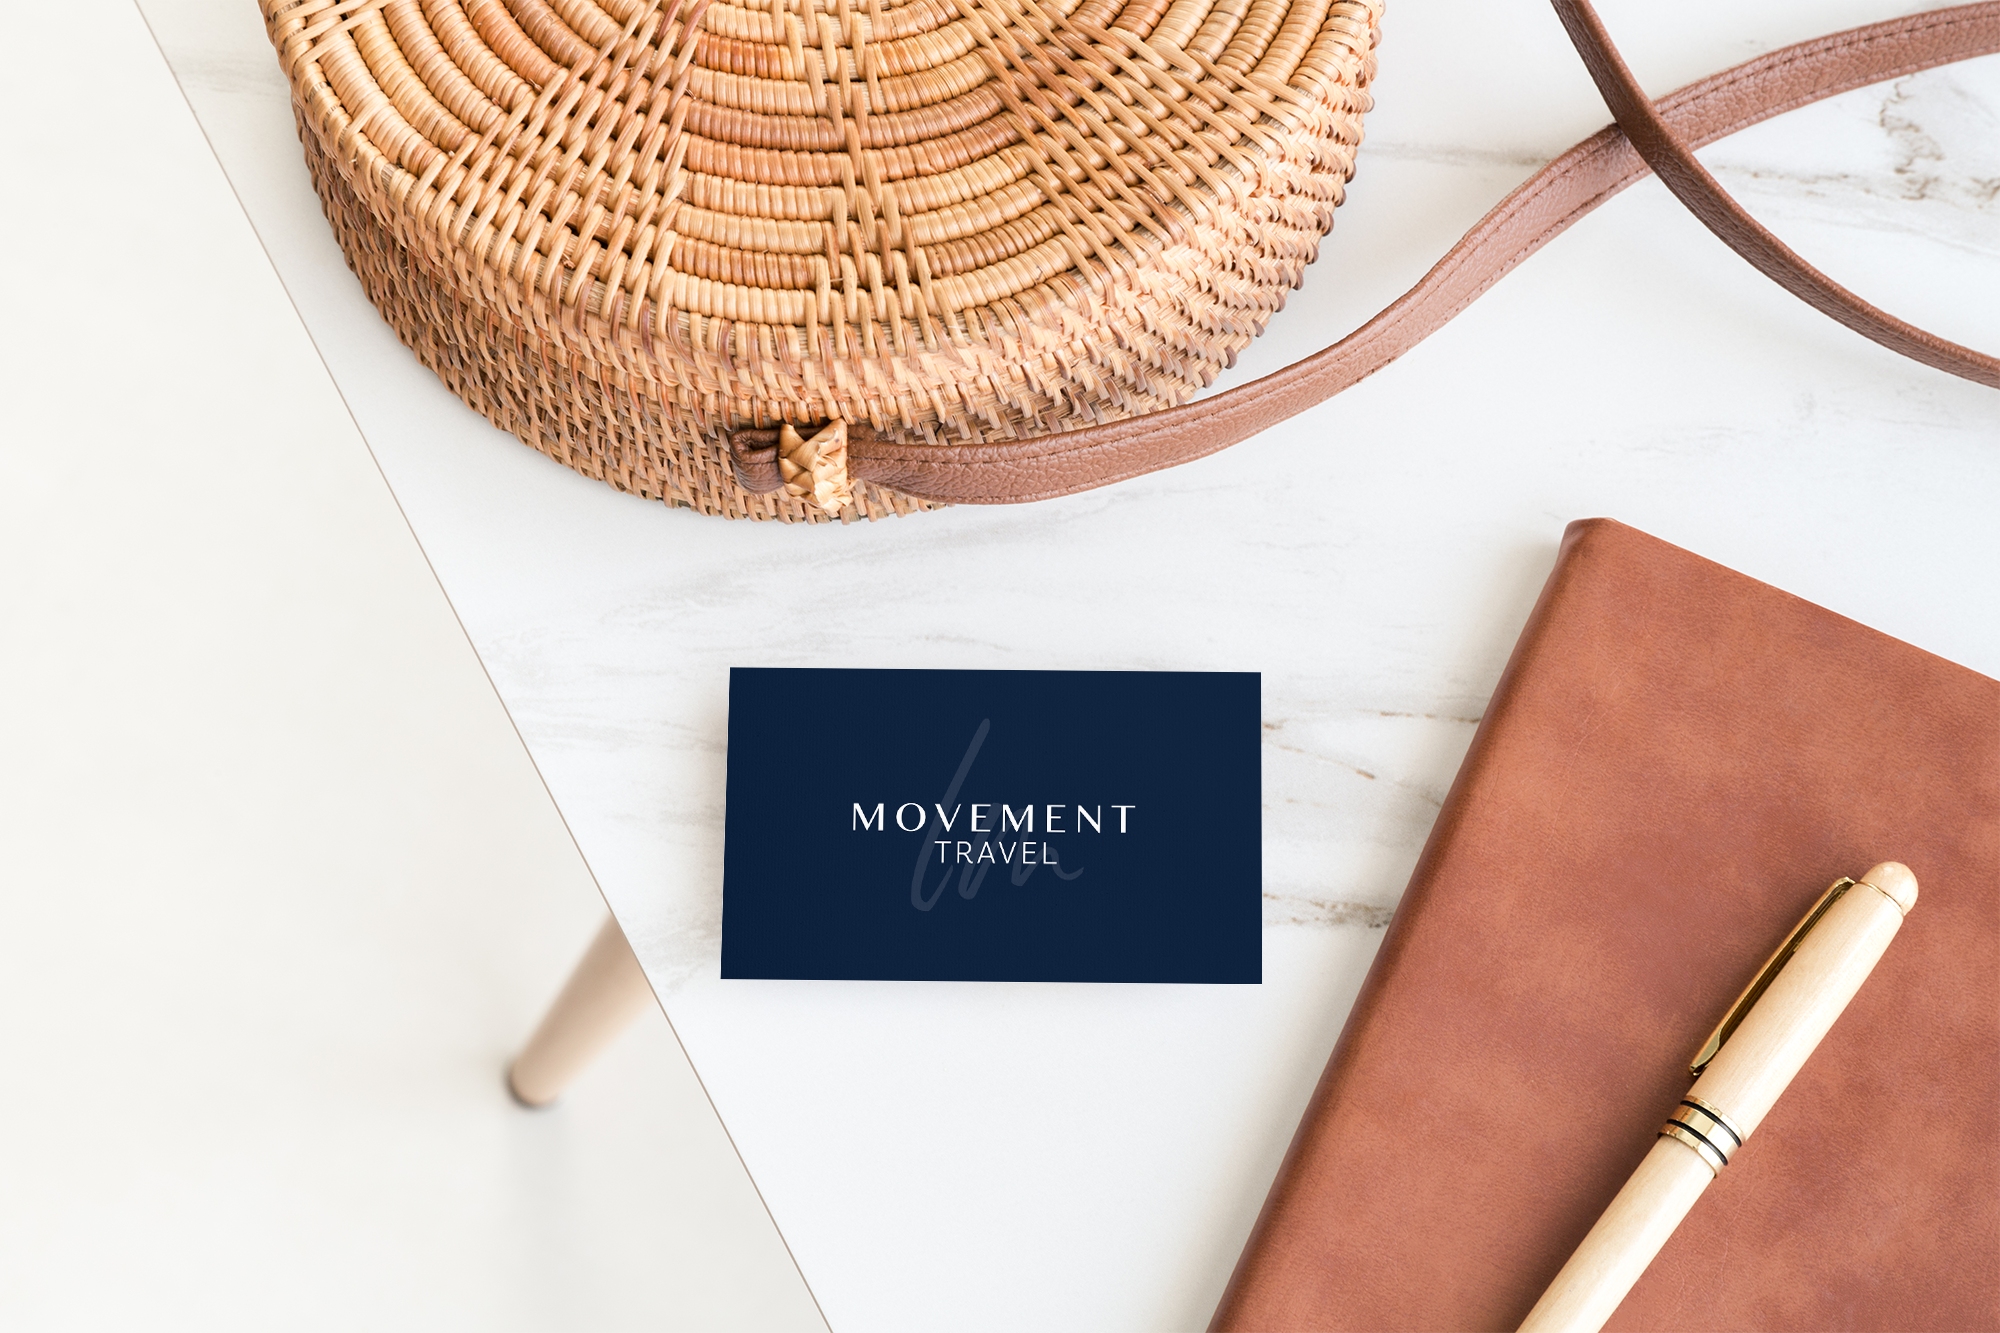 Blue LM Movement Travel business card mockup on a marble table with a wicker handbag